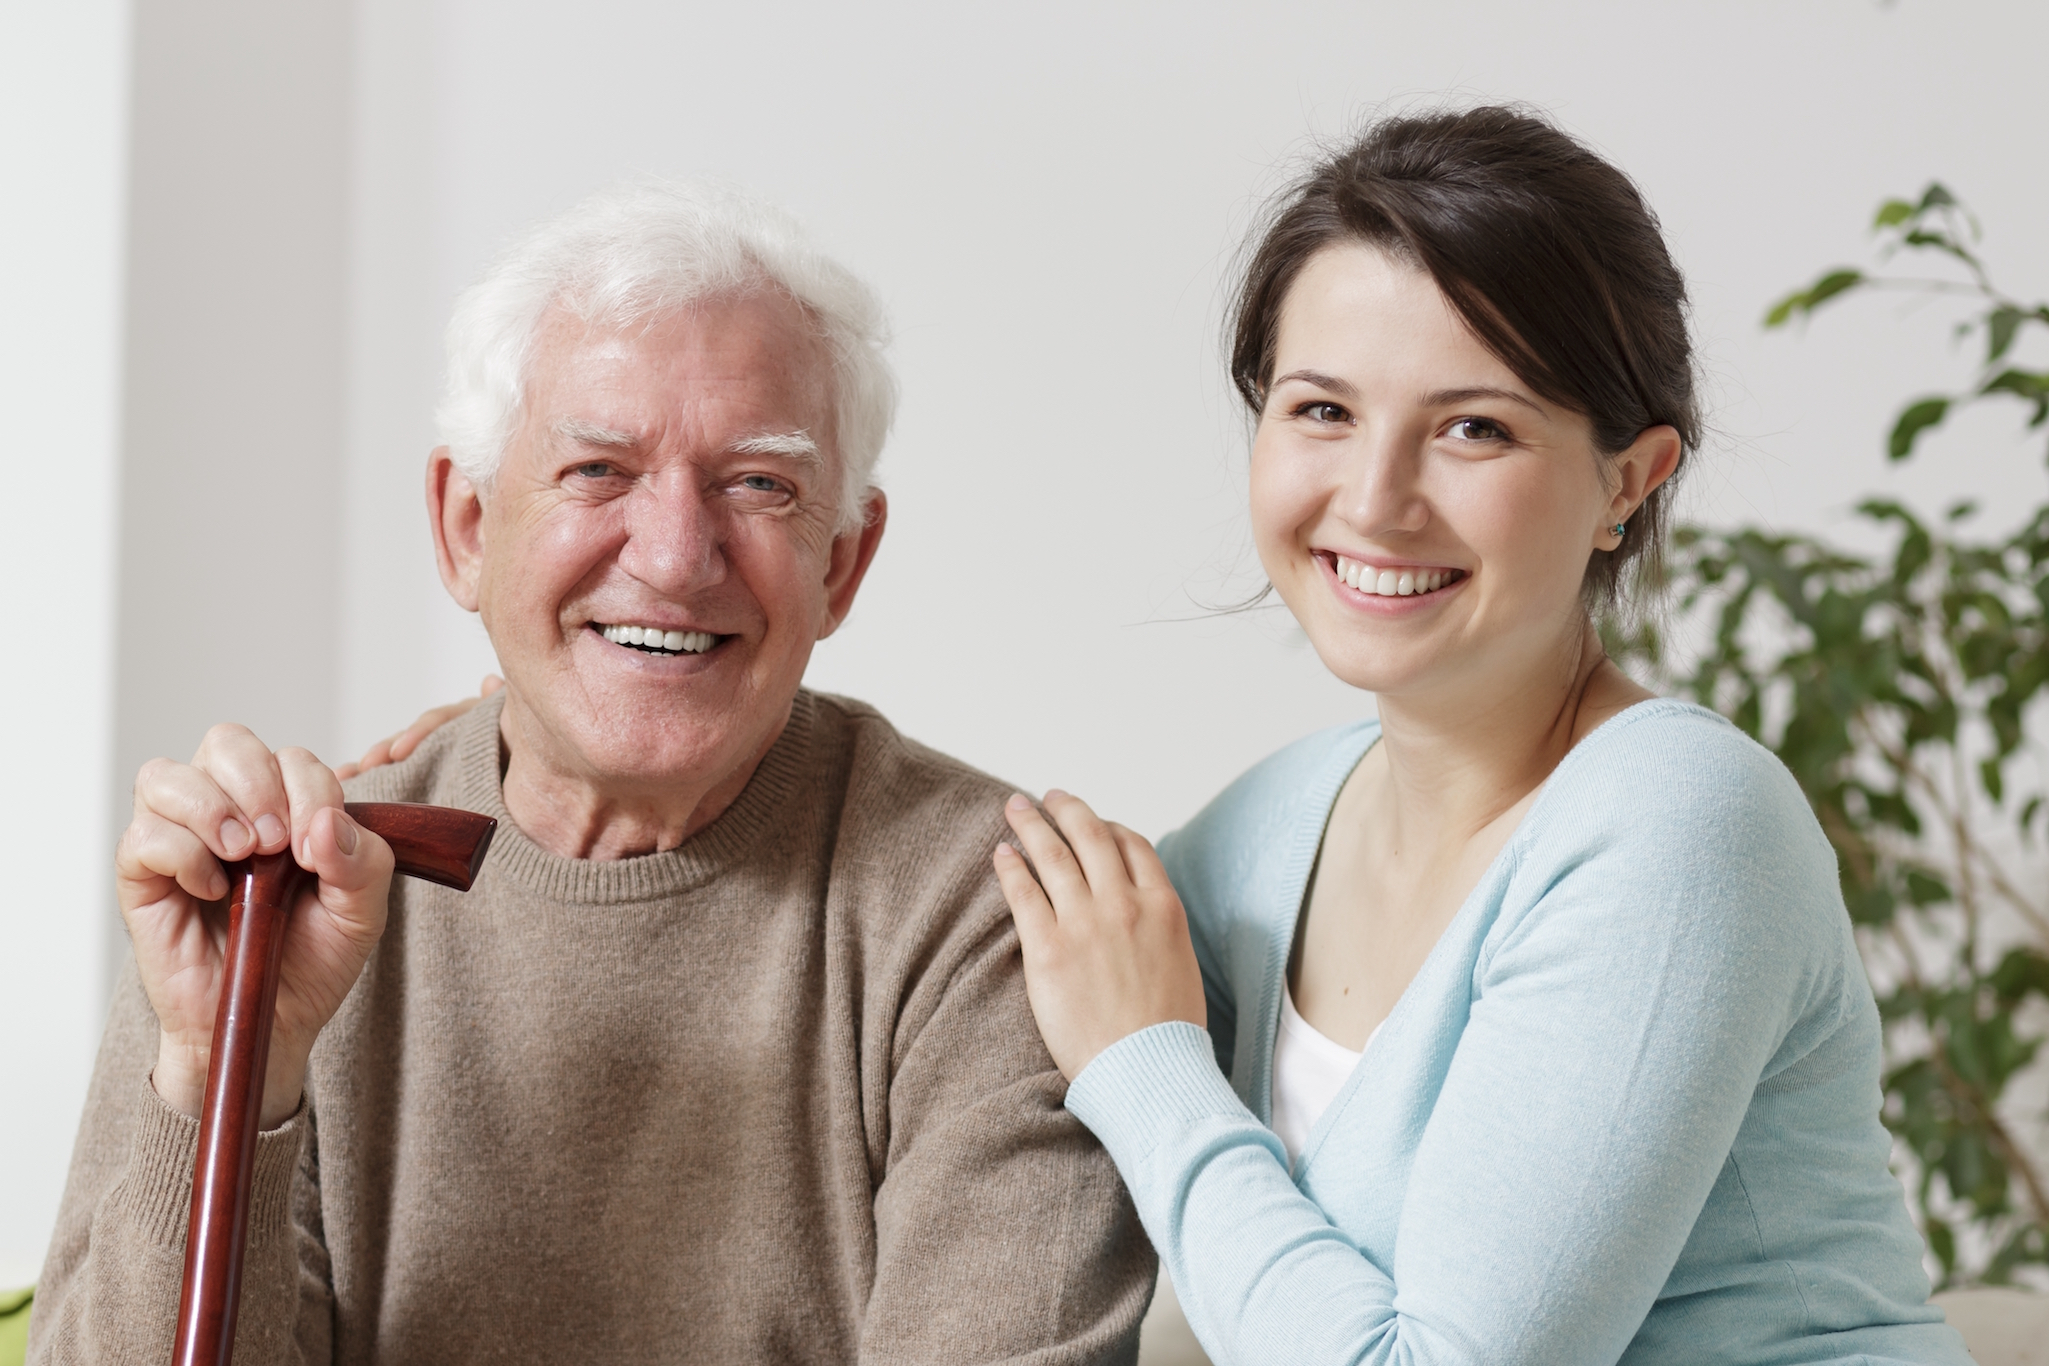 Recent findings show that providing one hour a week of social interaction for dementia patients can improve their quality of life.